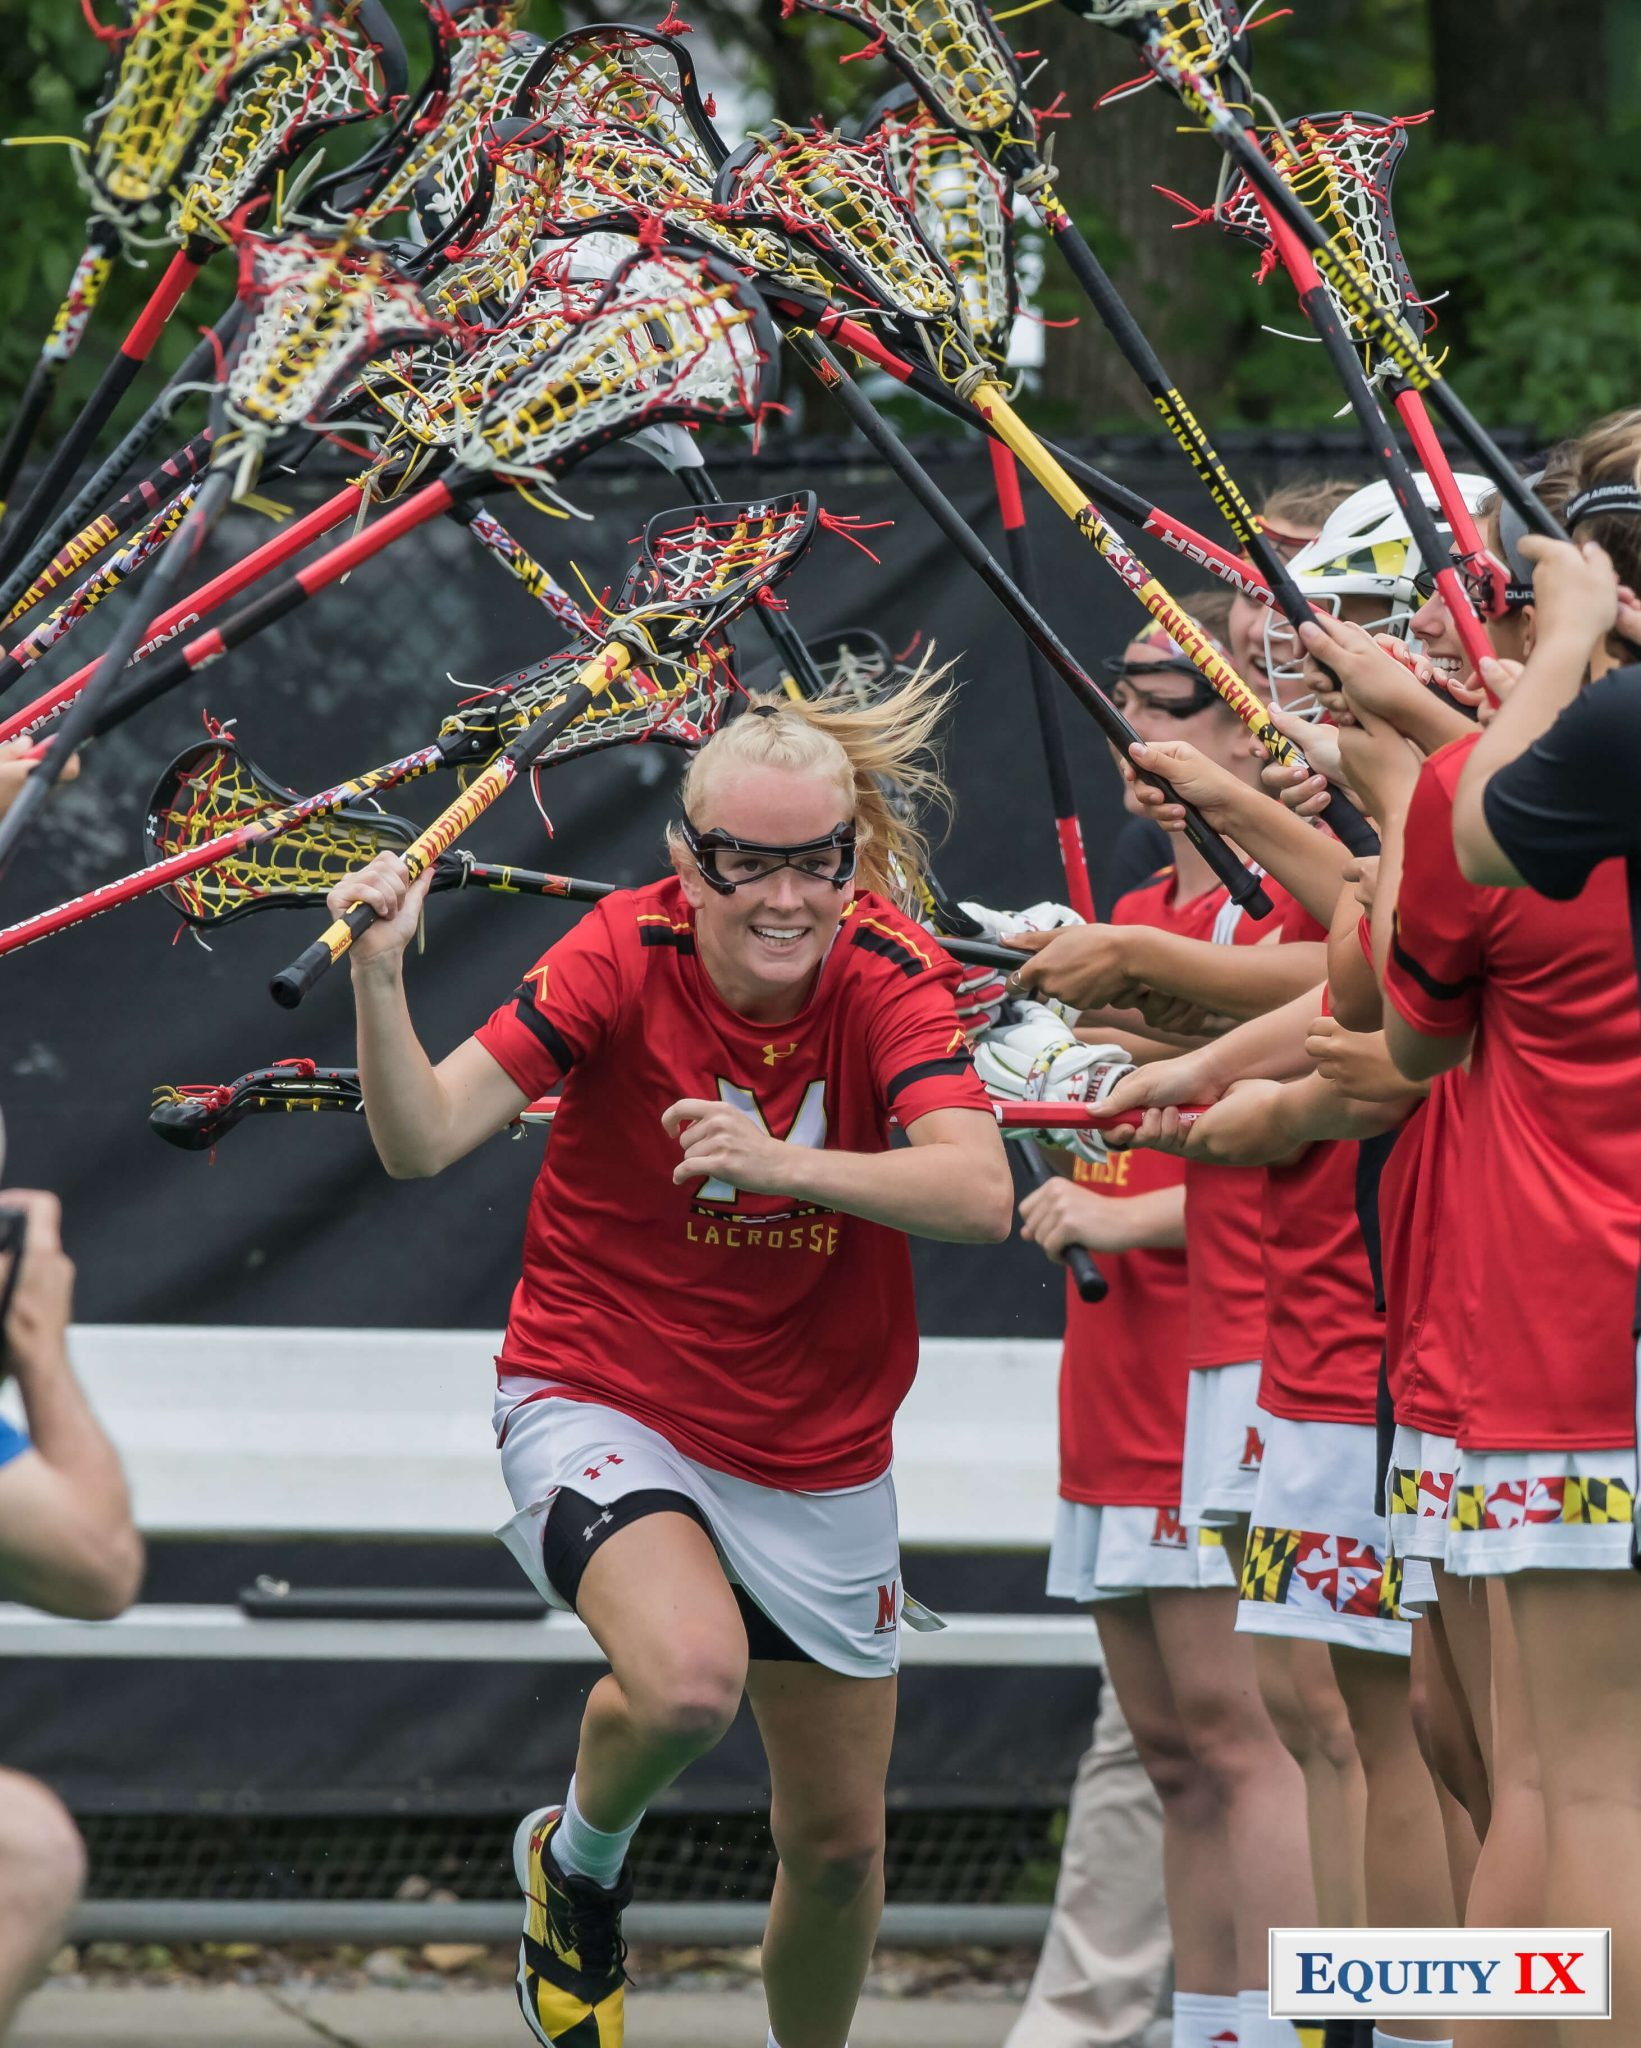 #1 Maryland – The Road to Repeat NCAA Champions